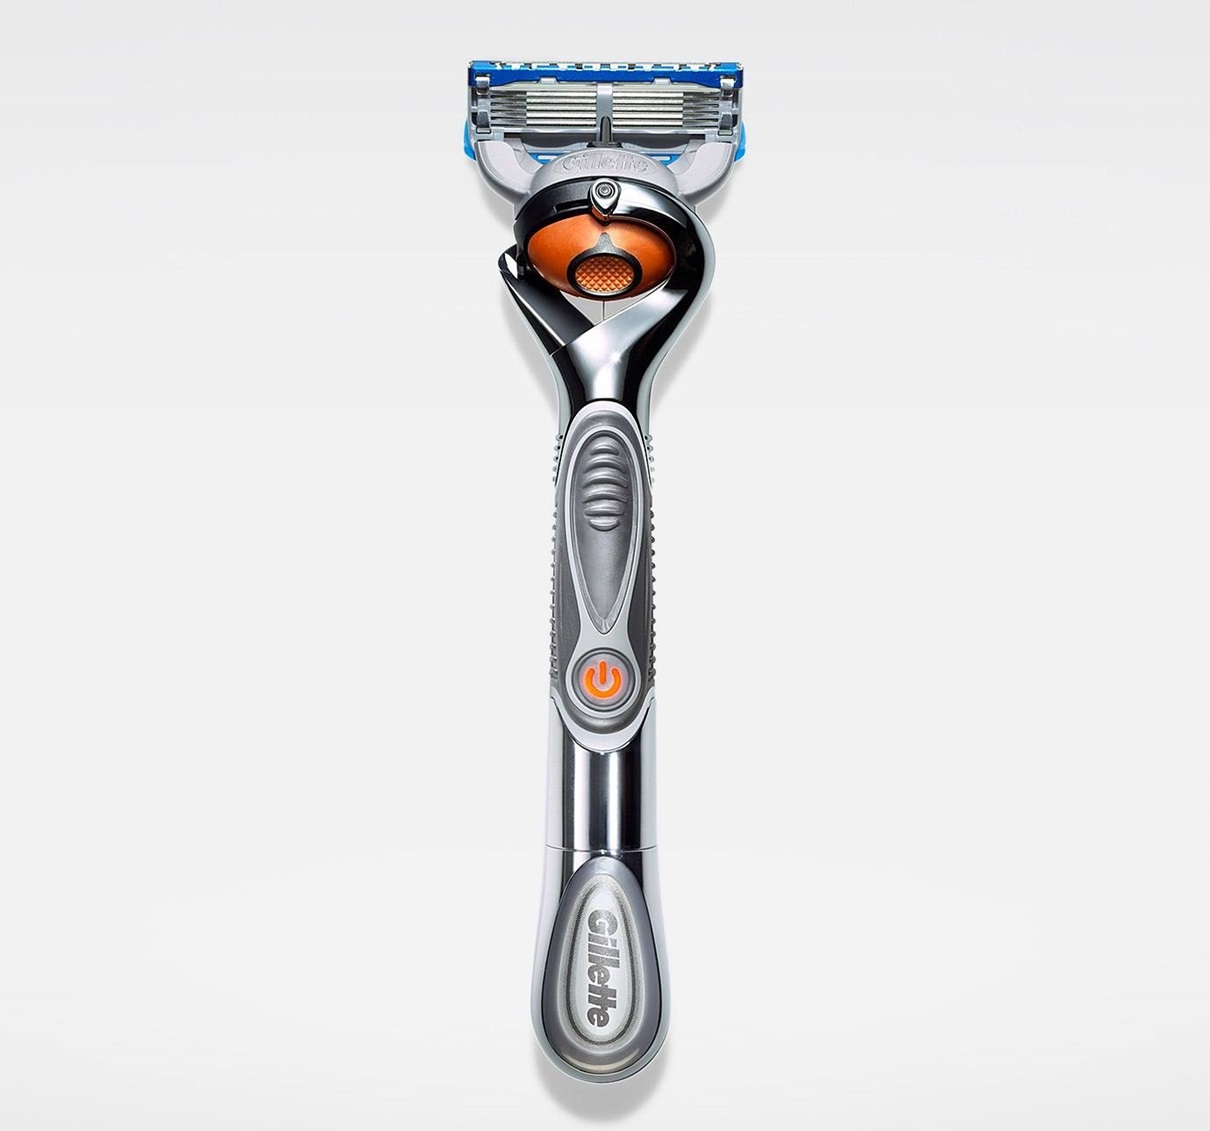 Gillette Fusion Proglide Silvertouch Power Razor With Flexball Technology